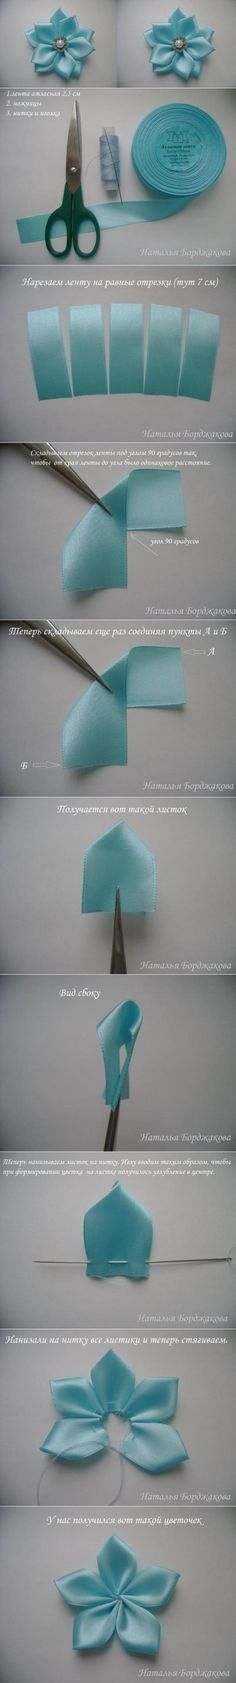 Luty Crochet Arts: handmade flowers DIY Pointed Petals Ribbon Flower DIY Pointed Petals Ribbon Flower Okay, so I can't read Russian, but this is cool.DIY Pointed Petals Ribbon Flower DIY Pointed Petals Ribbon Flower, I know it's in Russian and for th Ribbon Art, Fabric Ribbon, Ribbon Crafts, Flower Crafts, Fabric Crafts, Sewing Crafts, Sewing Projects, Diy Projects, Satin Ribbons